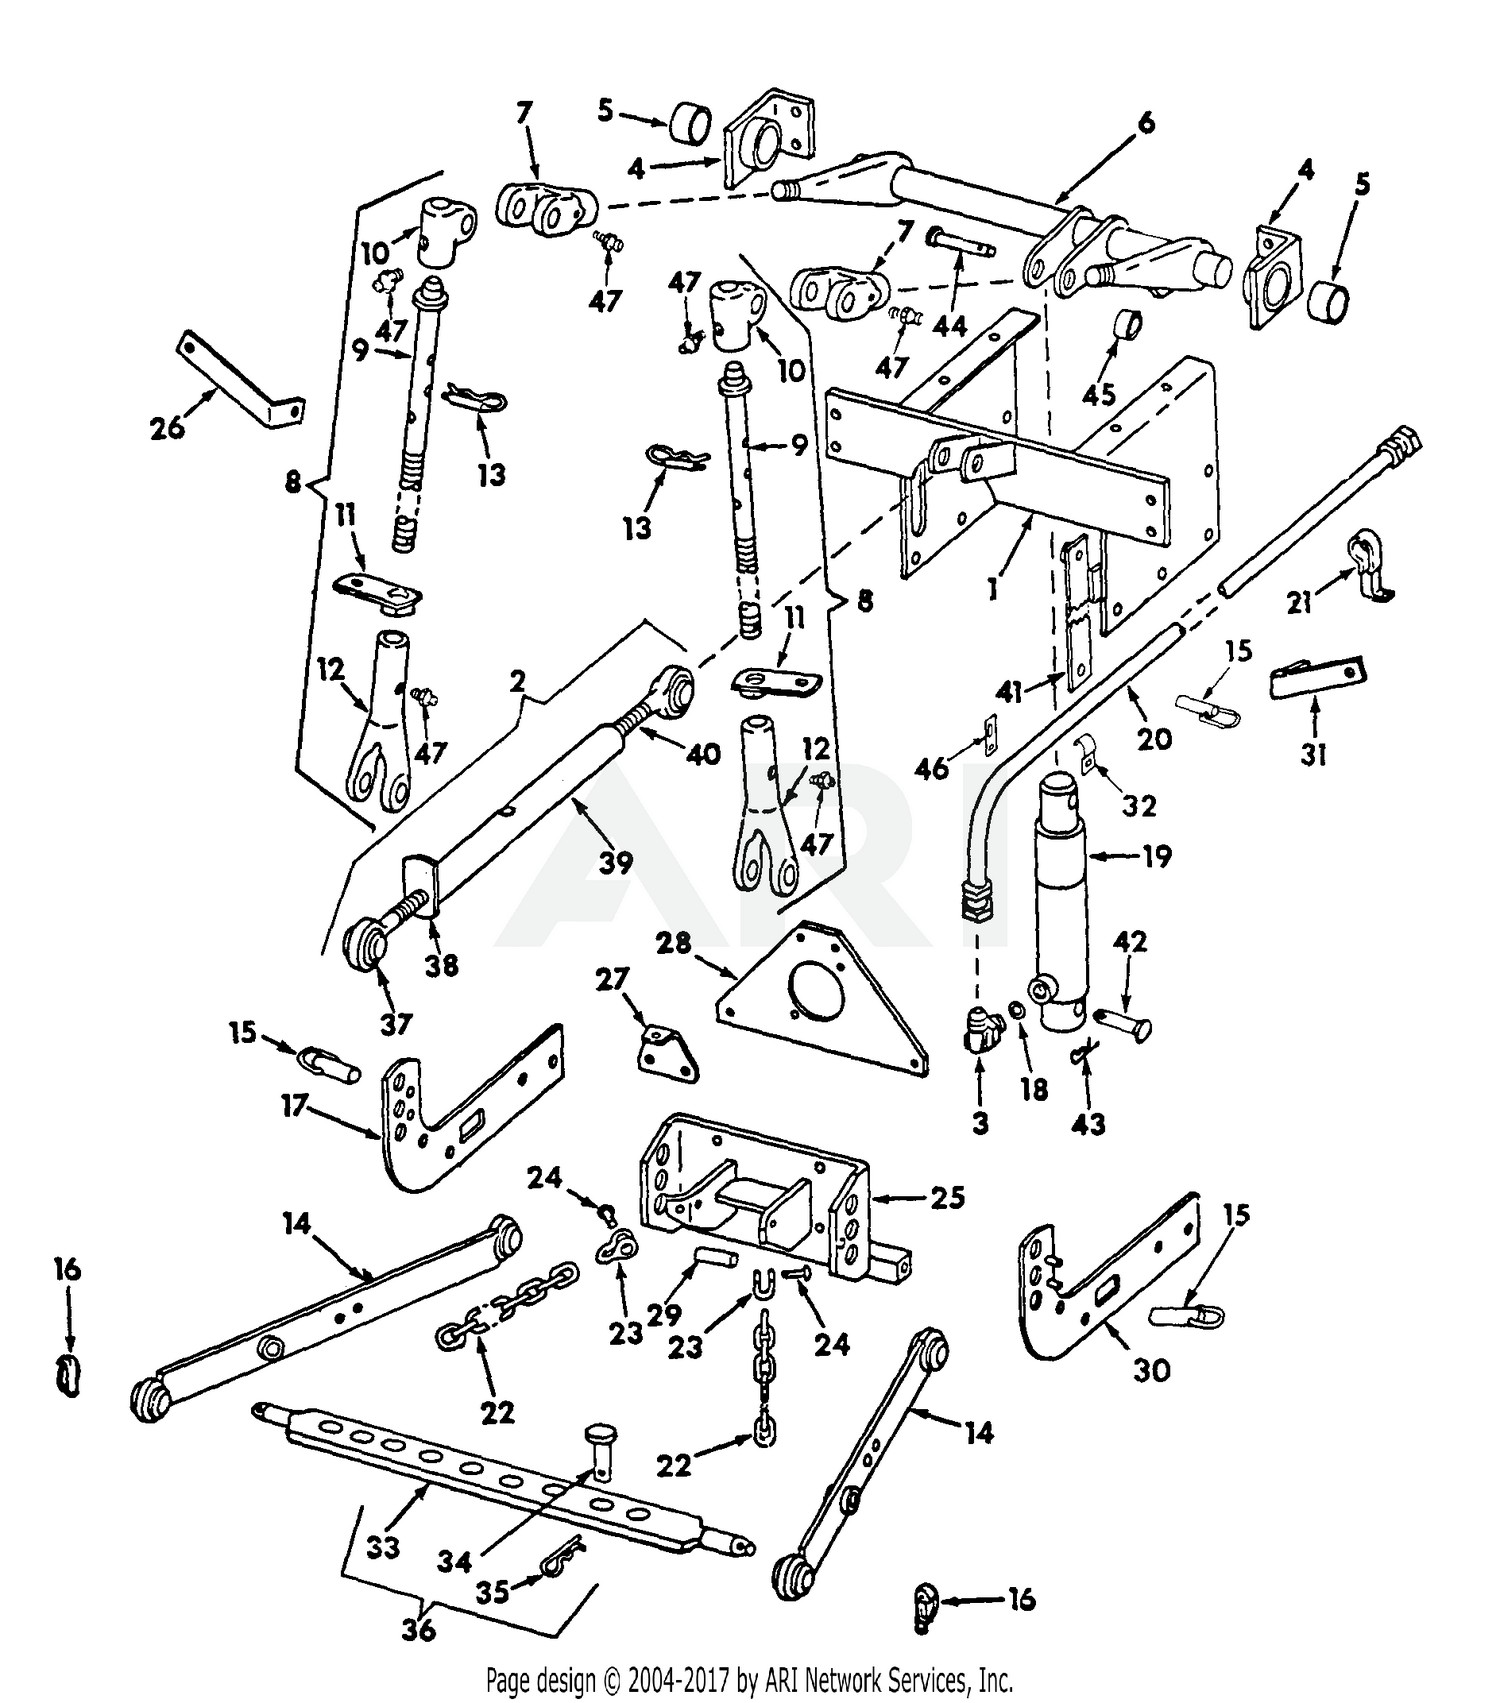 3 Point Hitch Parts Diagram Cub Cadet Parts Diagrams Cub Cadet 184 Tractor Three Point Hitch Of 3 Point Hitch Parts Diagram John Deere Parts Diagrams John Deere X465 Garden Tractor Pc9109